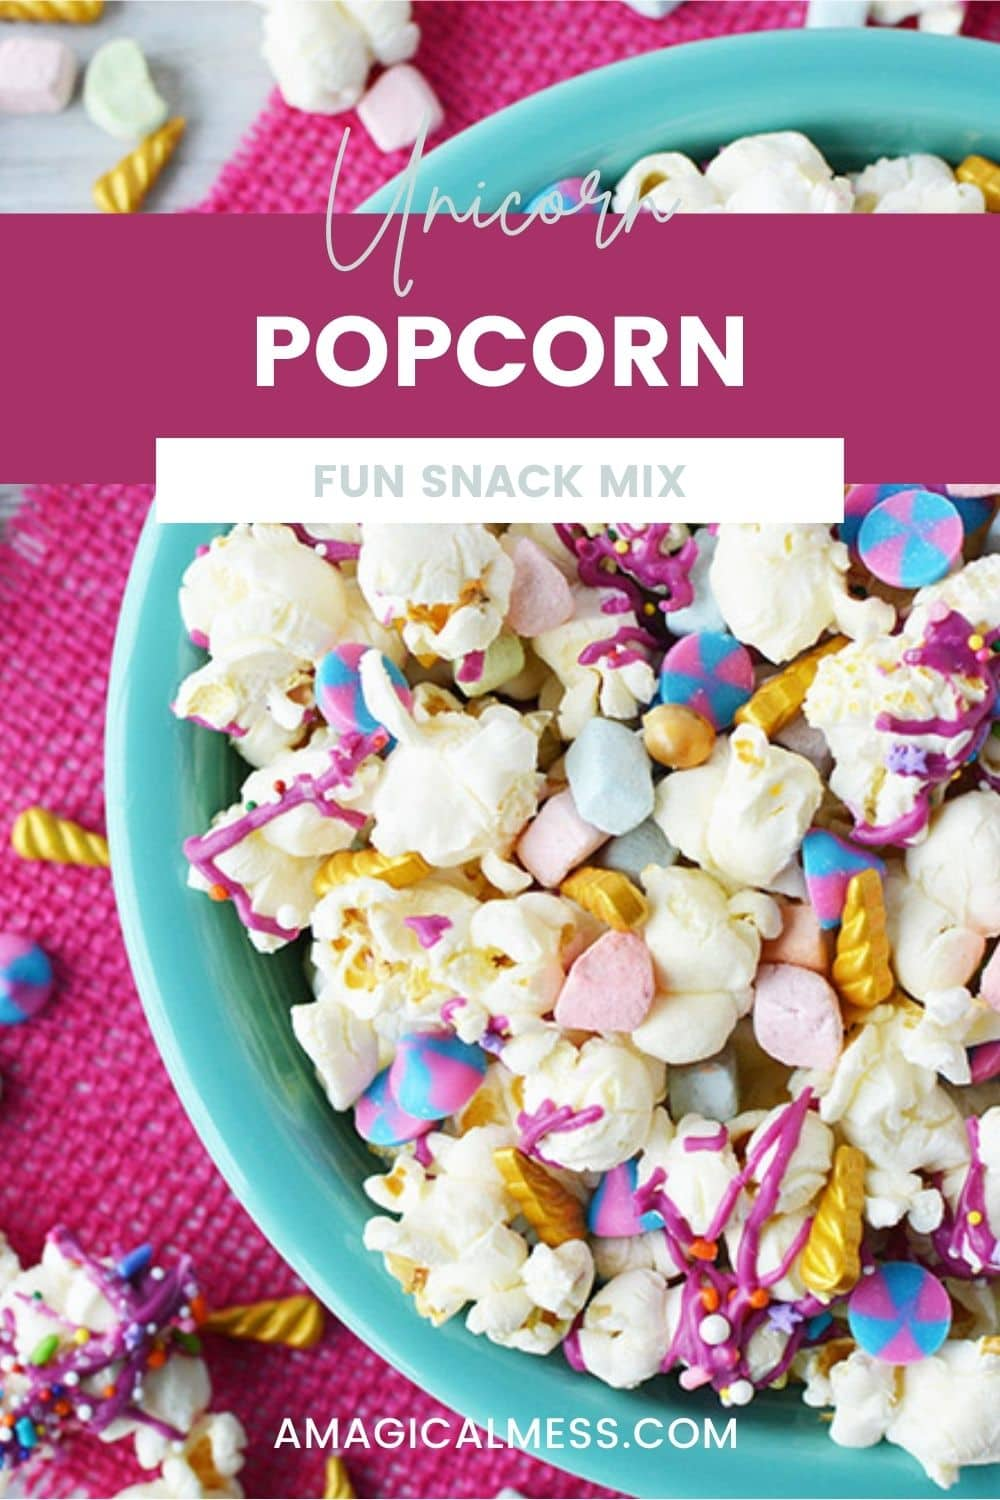 Blue bowl full of unicorn popcorn with candies.